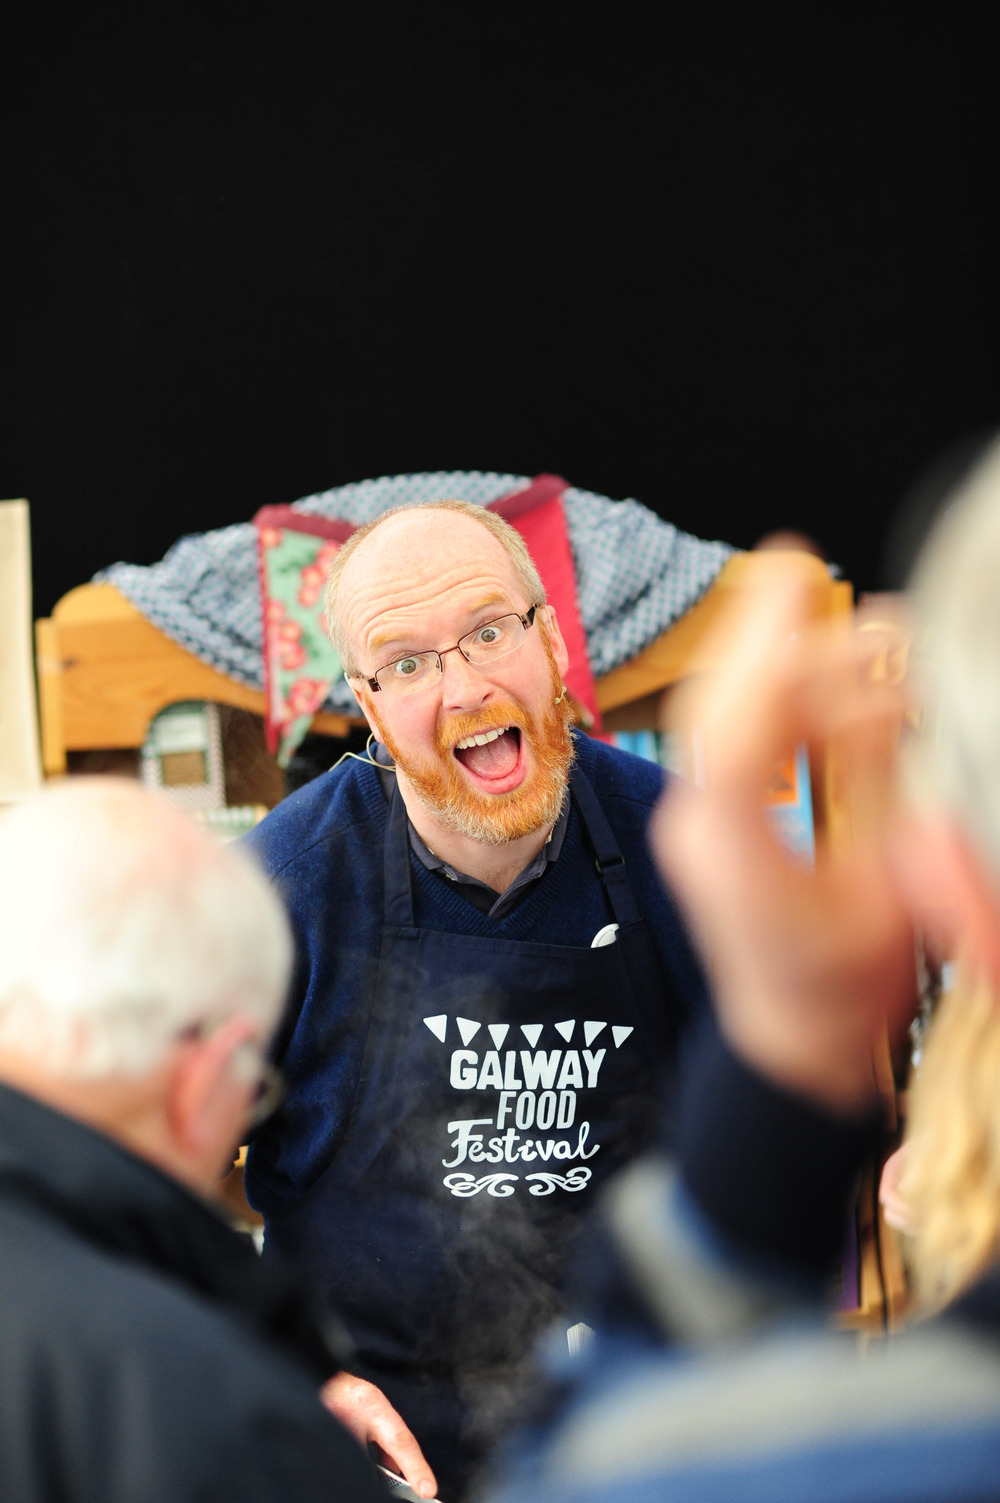 Galway Food Festival 2015 All-385.jpg